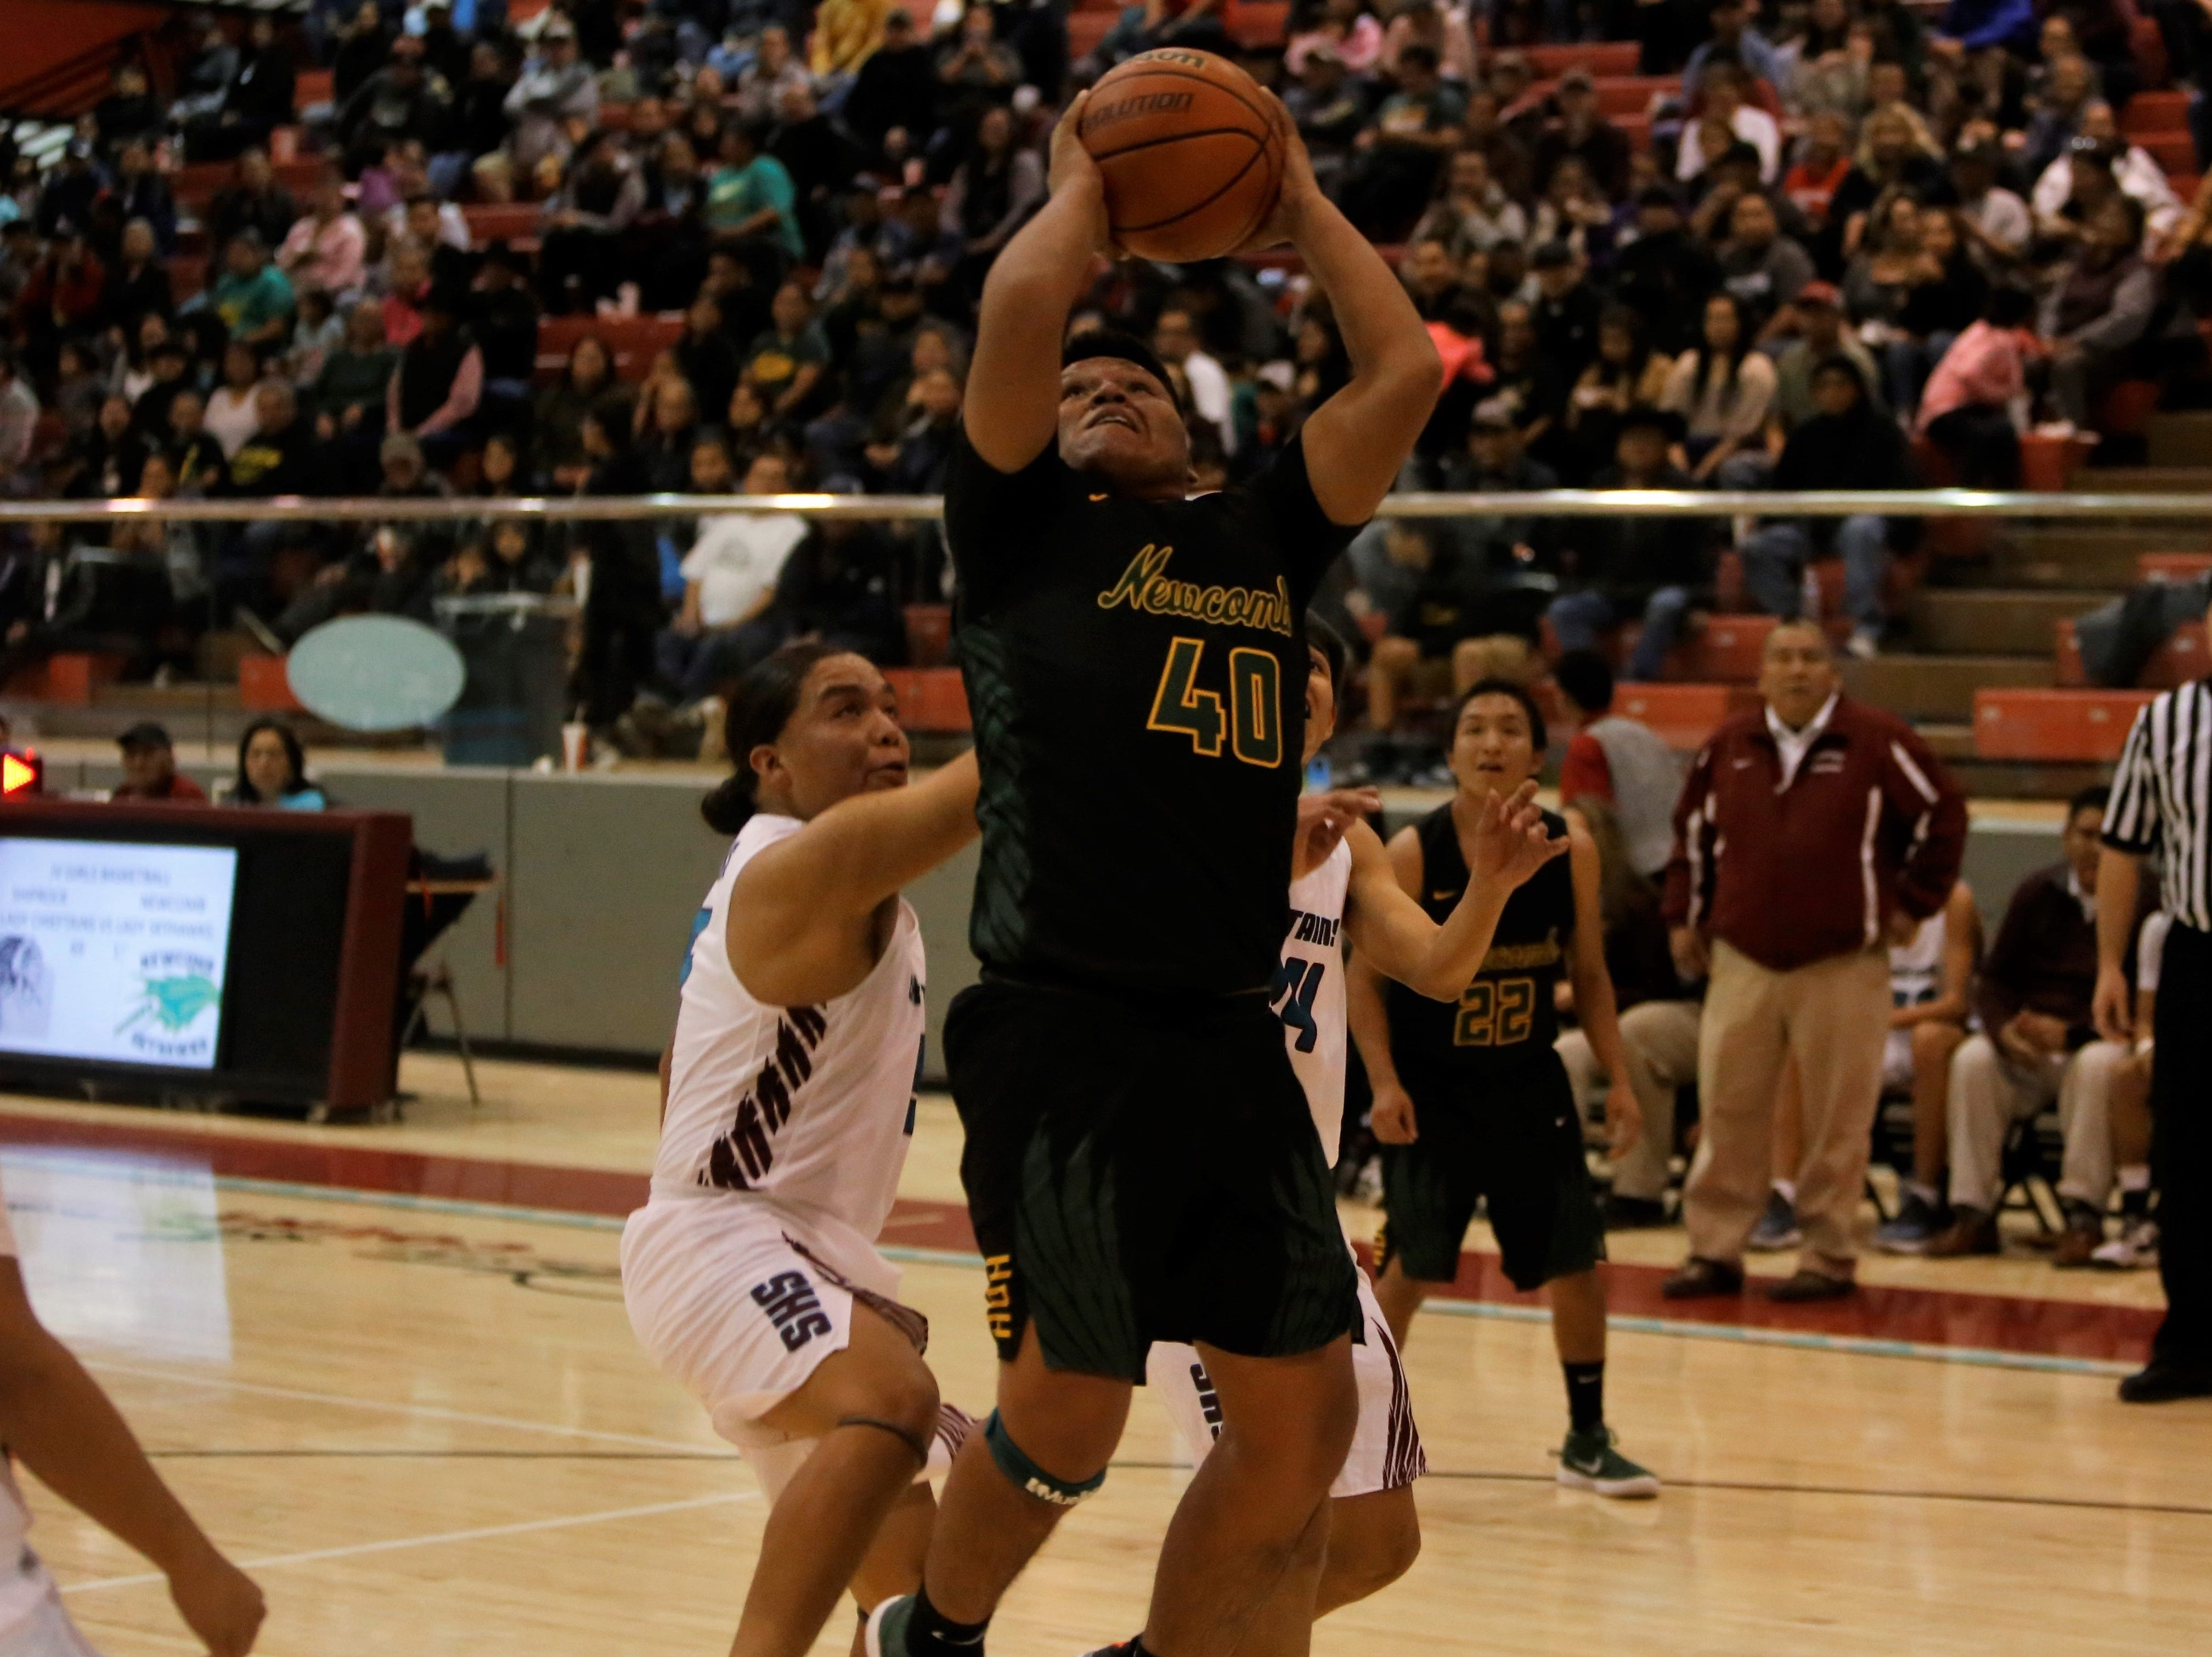 Newcomb's Tracey Bryant jumps up and makes a basket against Shiprock during Thursday's game at the Chieftain Pit in Shiprock.